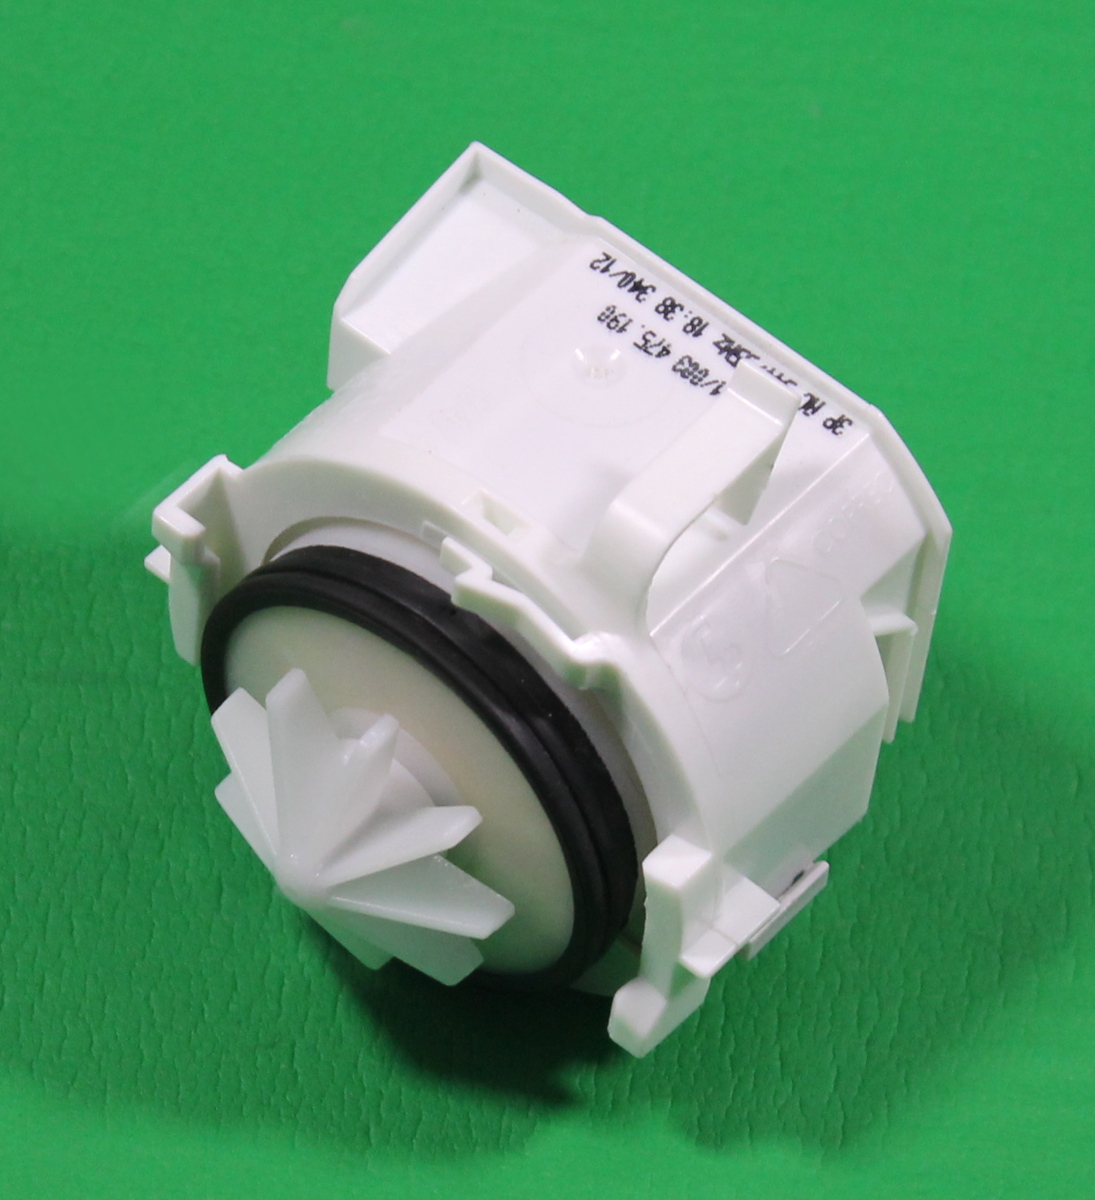 Bosch sms40c02gb 07 dishwasher drain pump blp3 01 003 ebay - Bosch dishwasher pump not draining ...